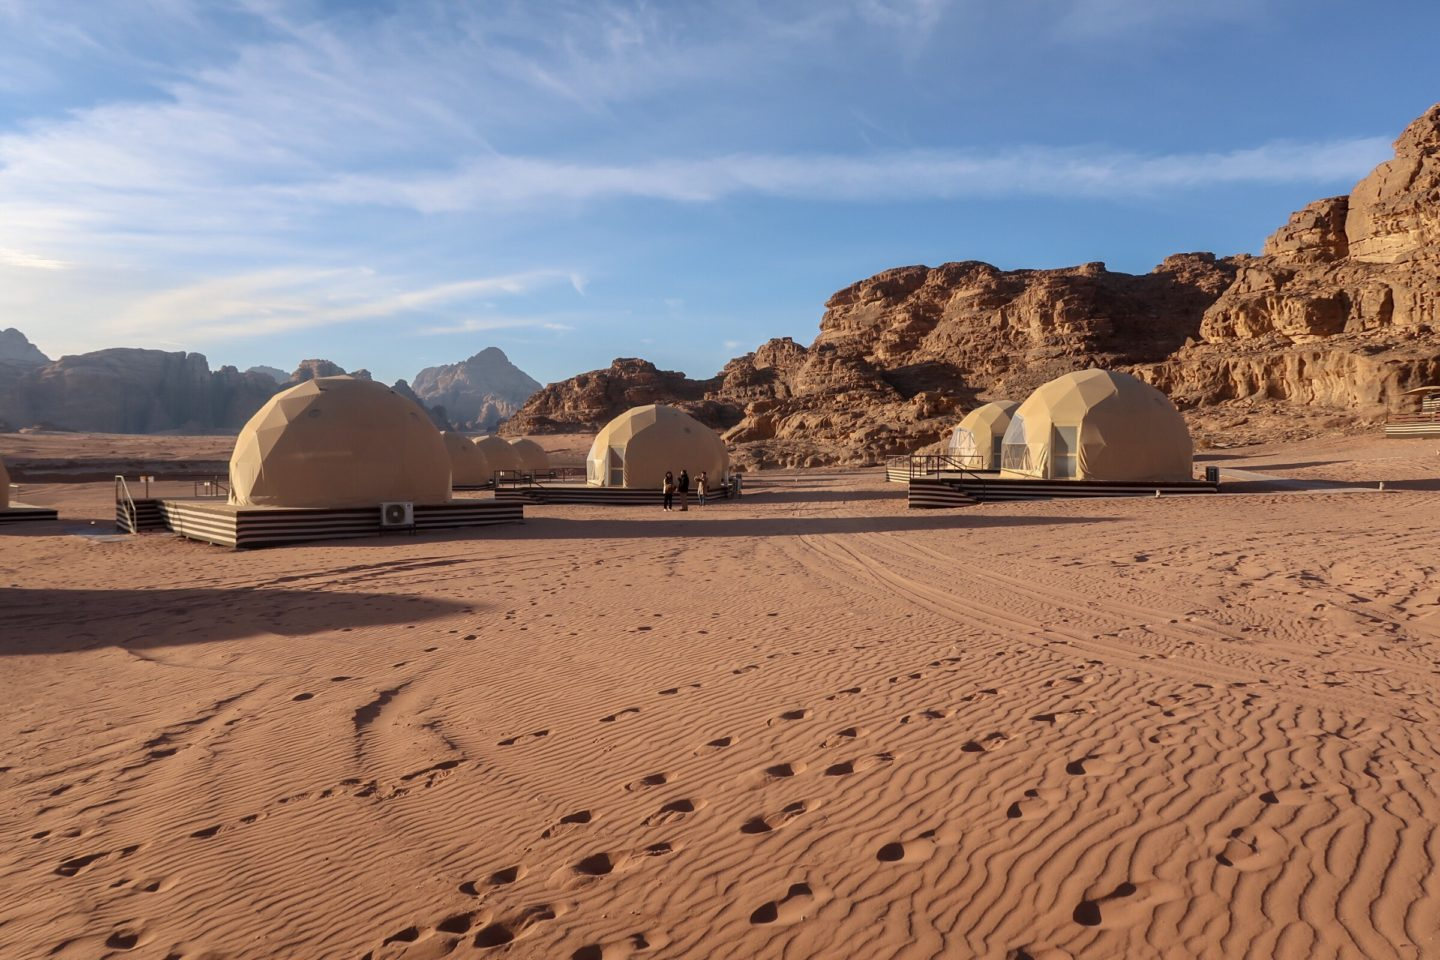 A series of the Martian tents in the middle of the desert - Jordan Adventures Part 4 - Wadi Rum